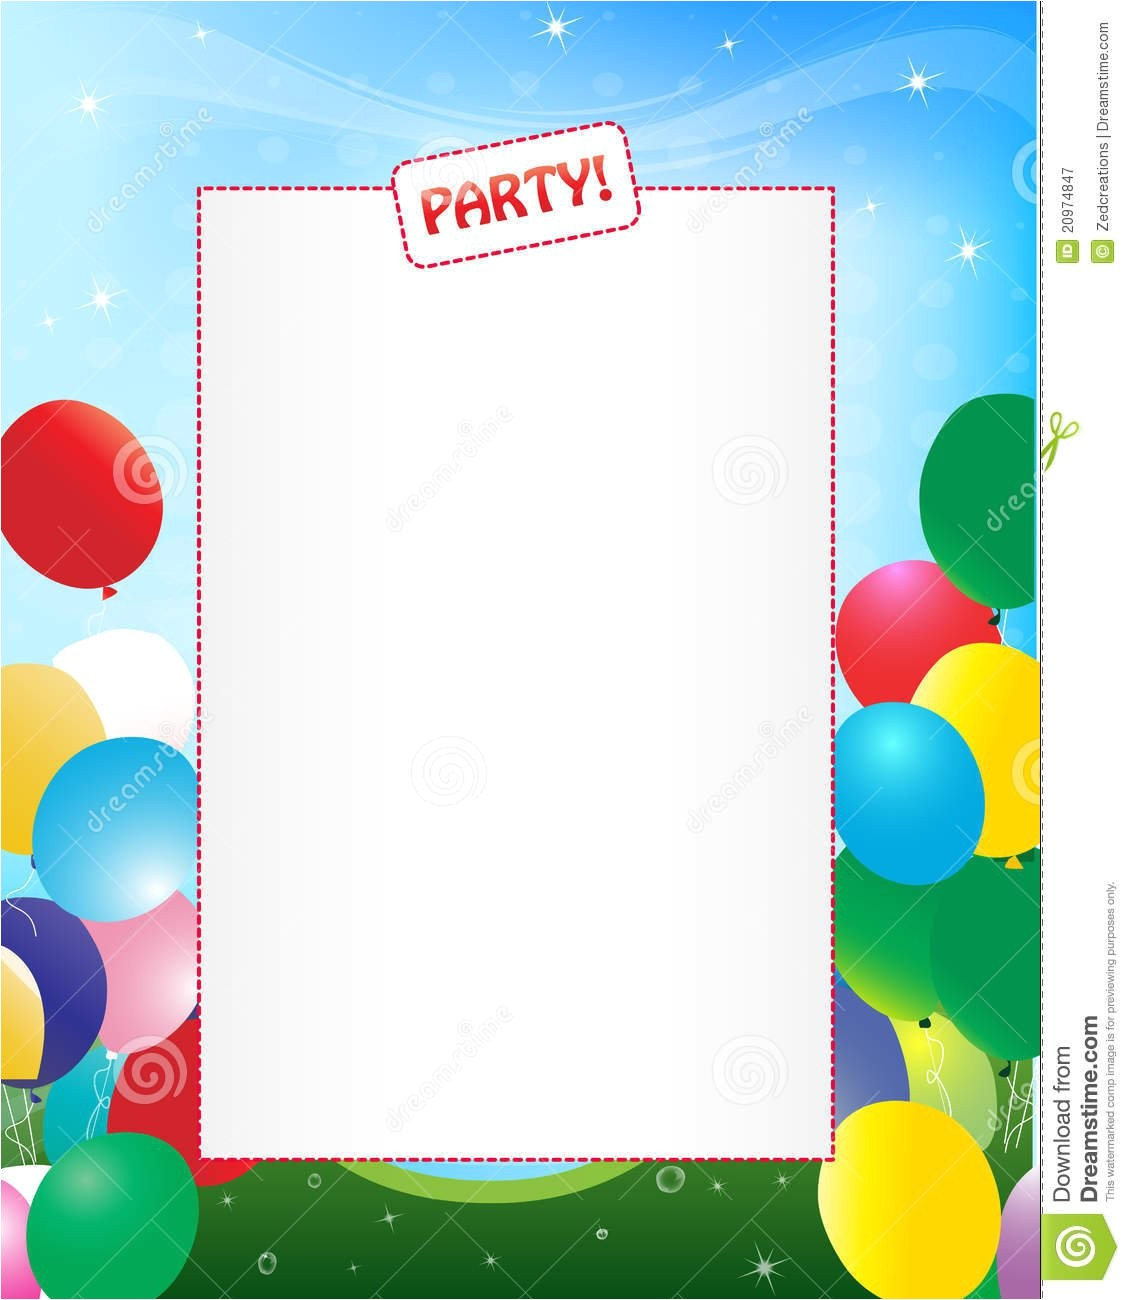 backgrounds for birthday invitations